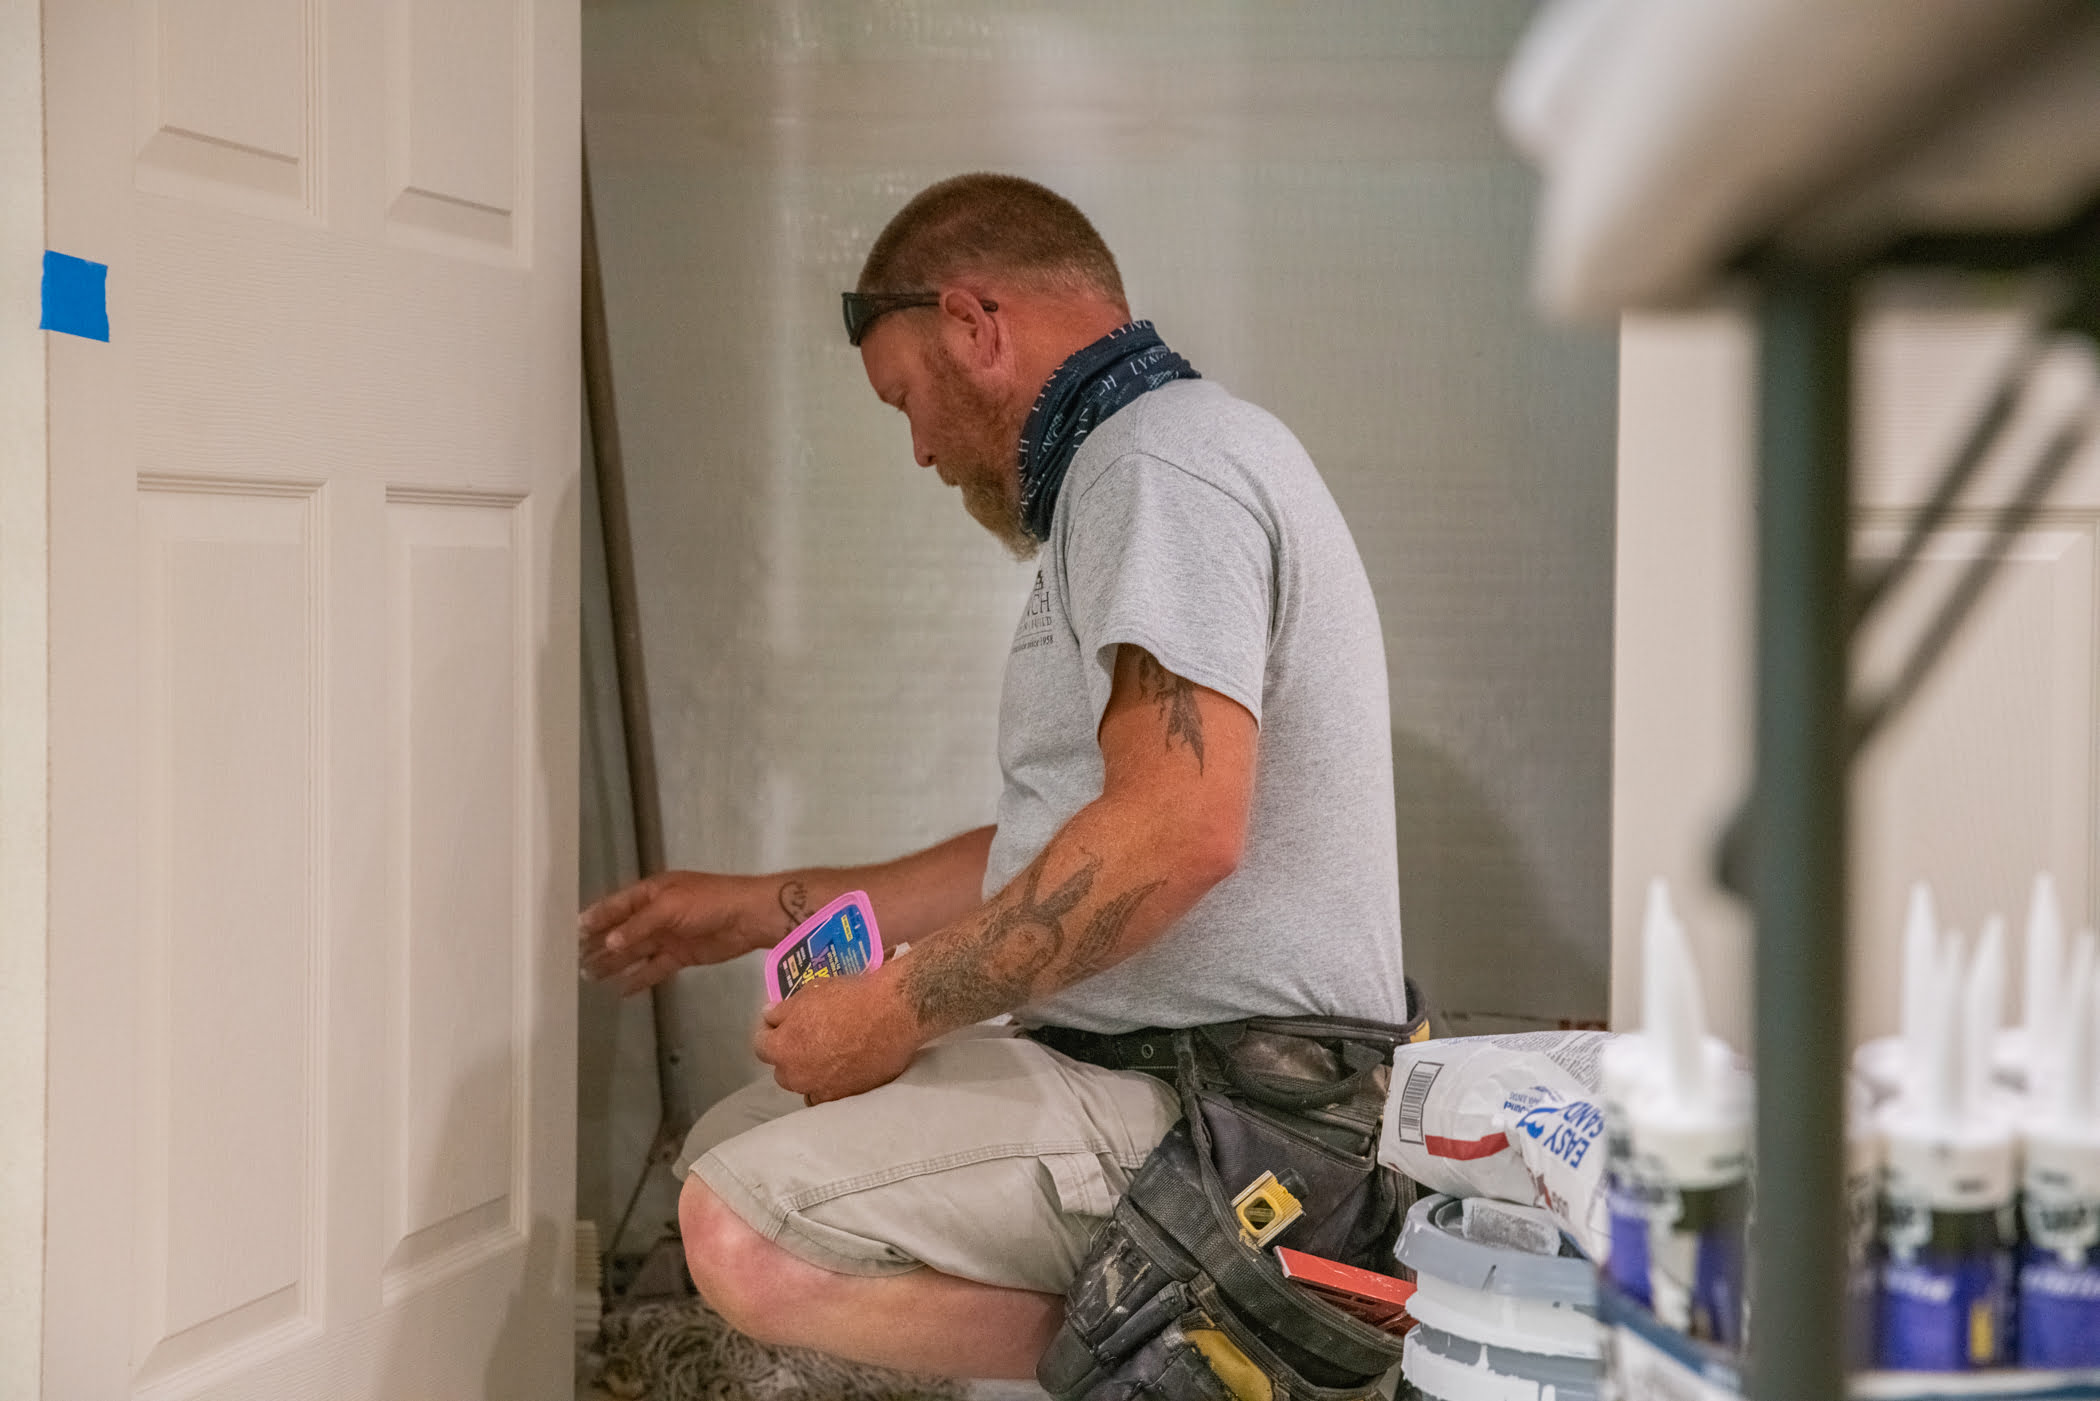 Lynch employee working on paint finishes on a Lynch home remodel project